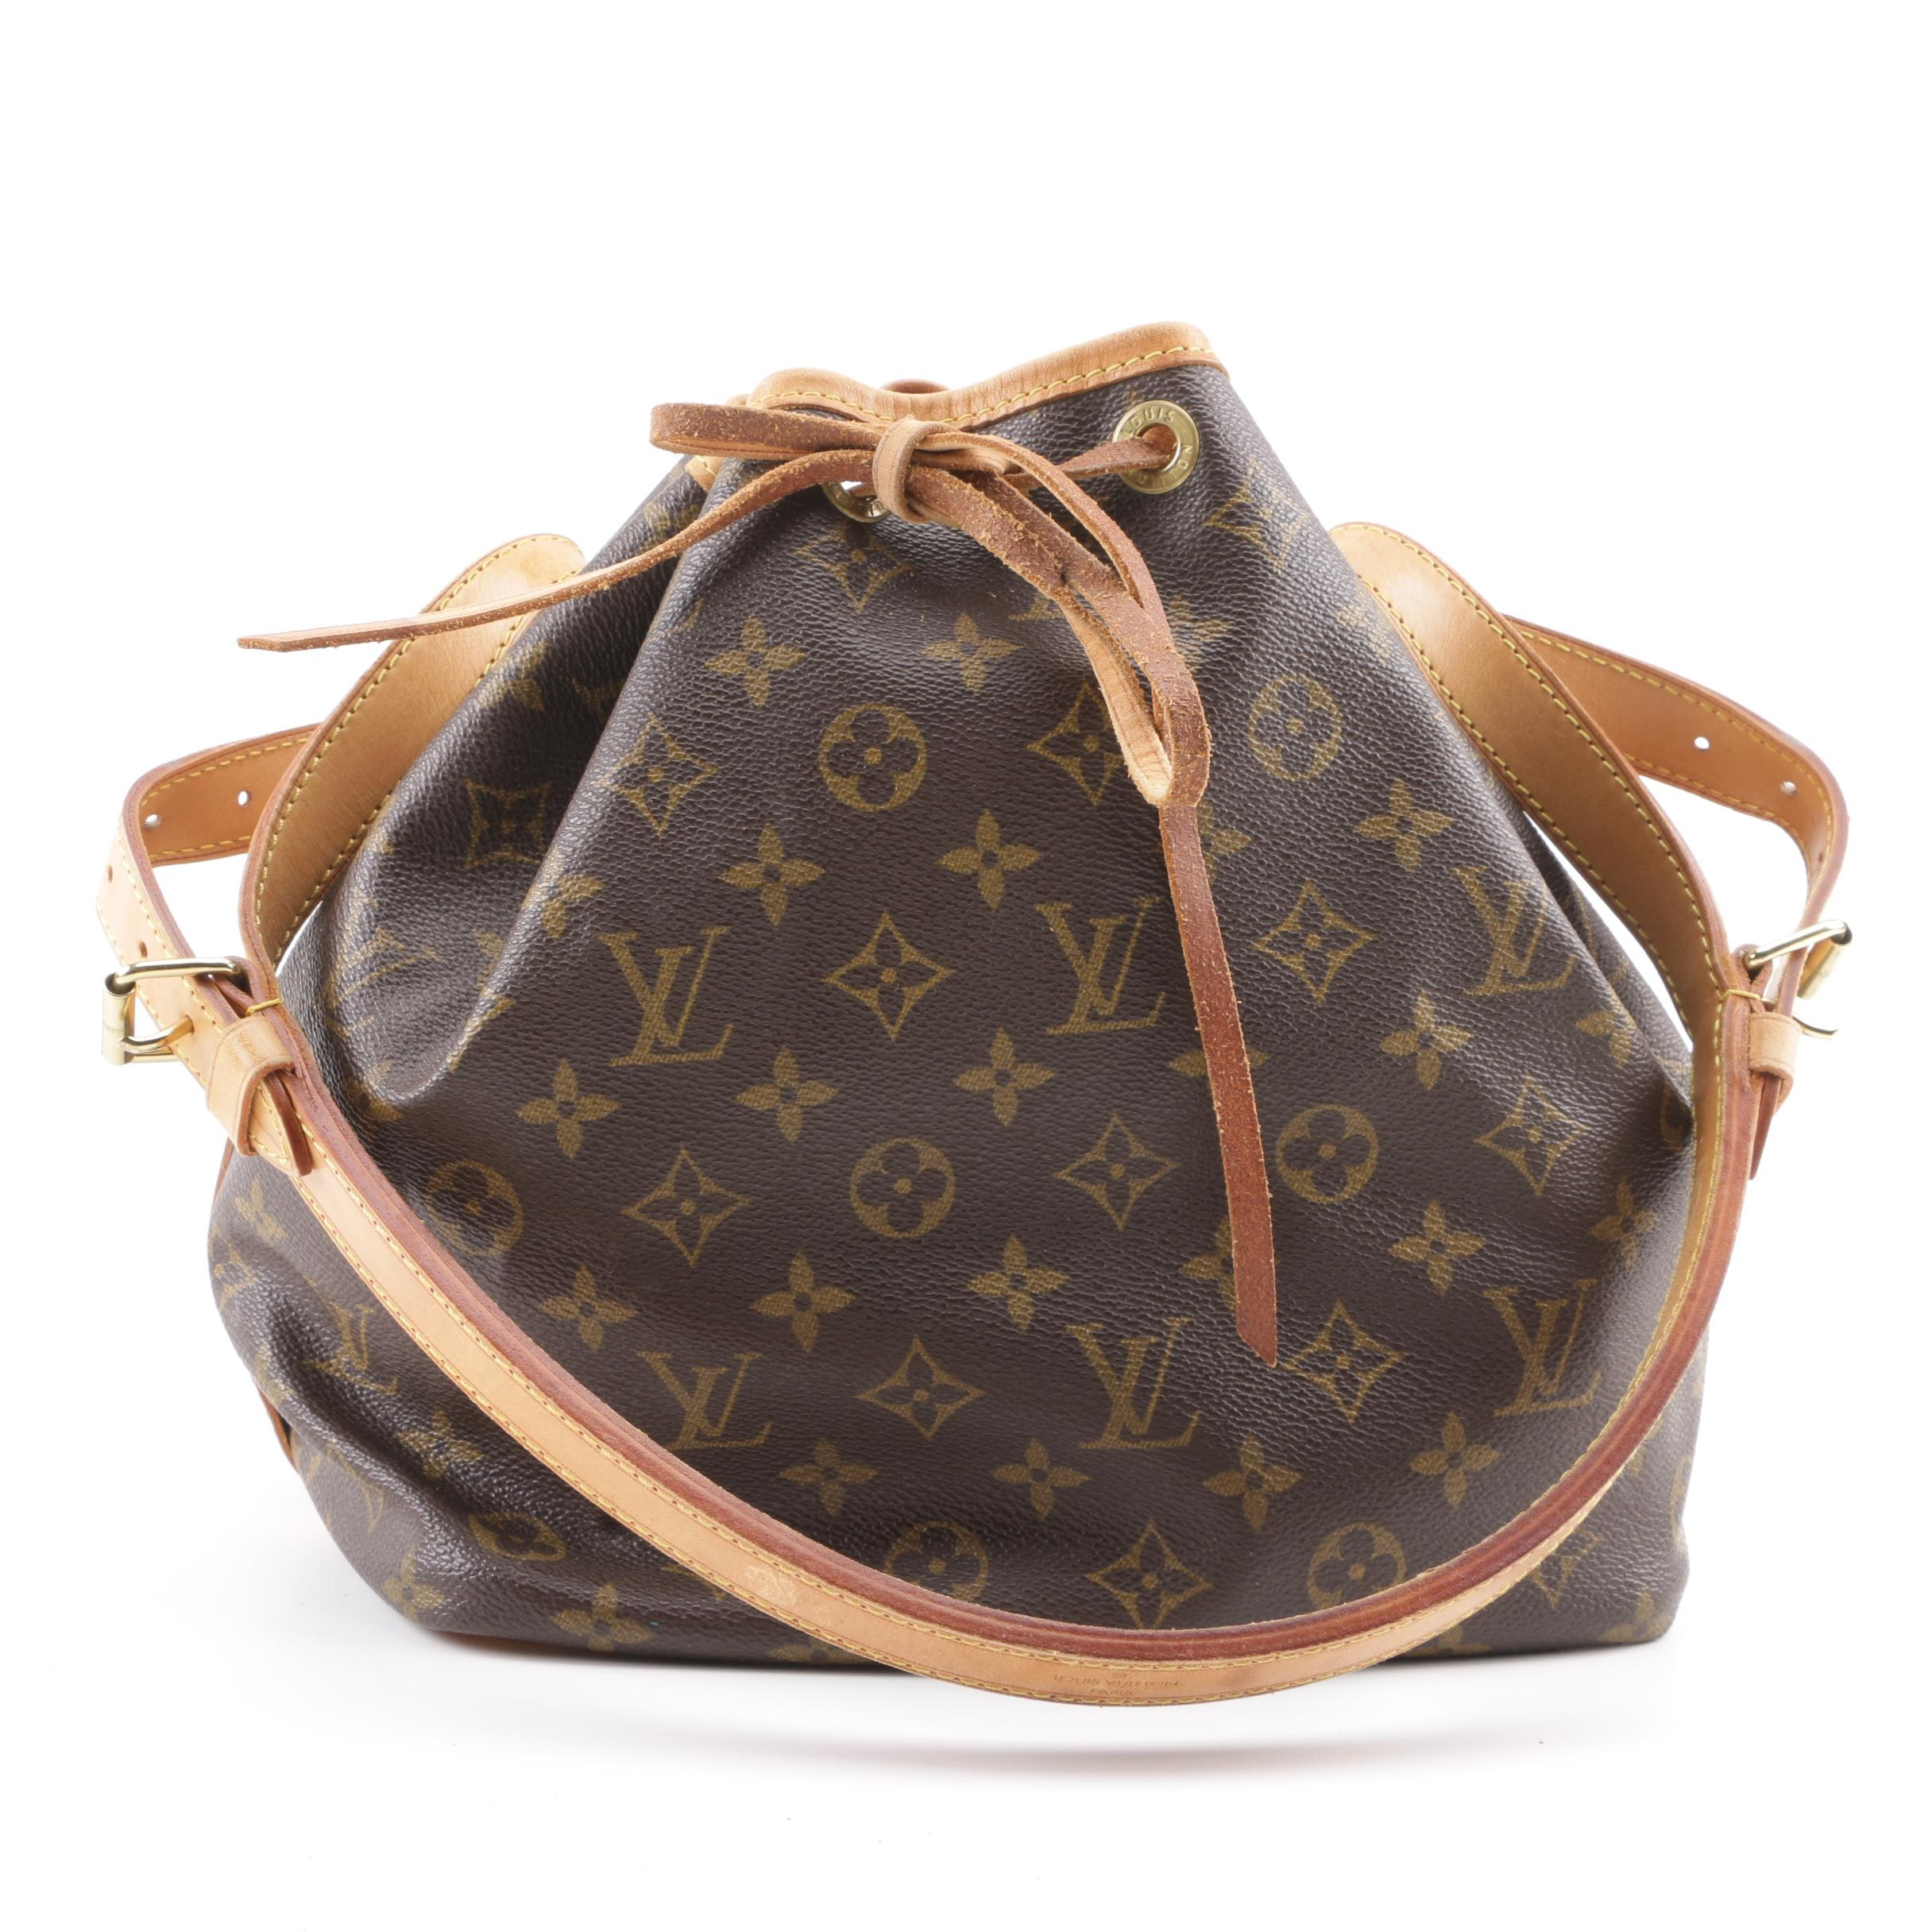 1993 Vintage Louis Vuitton Paris Monogram Canvas Noe Bucket Bag